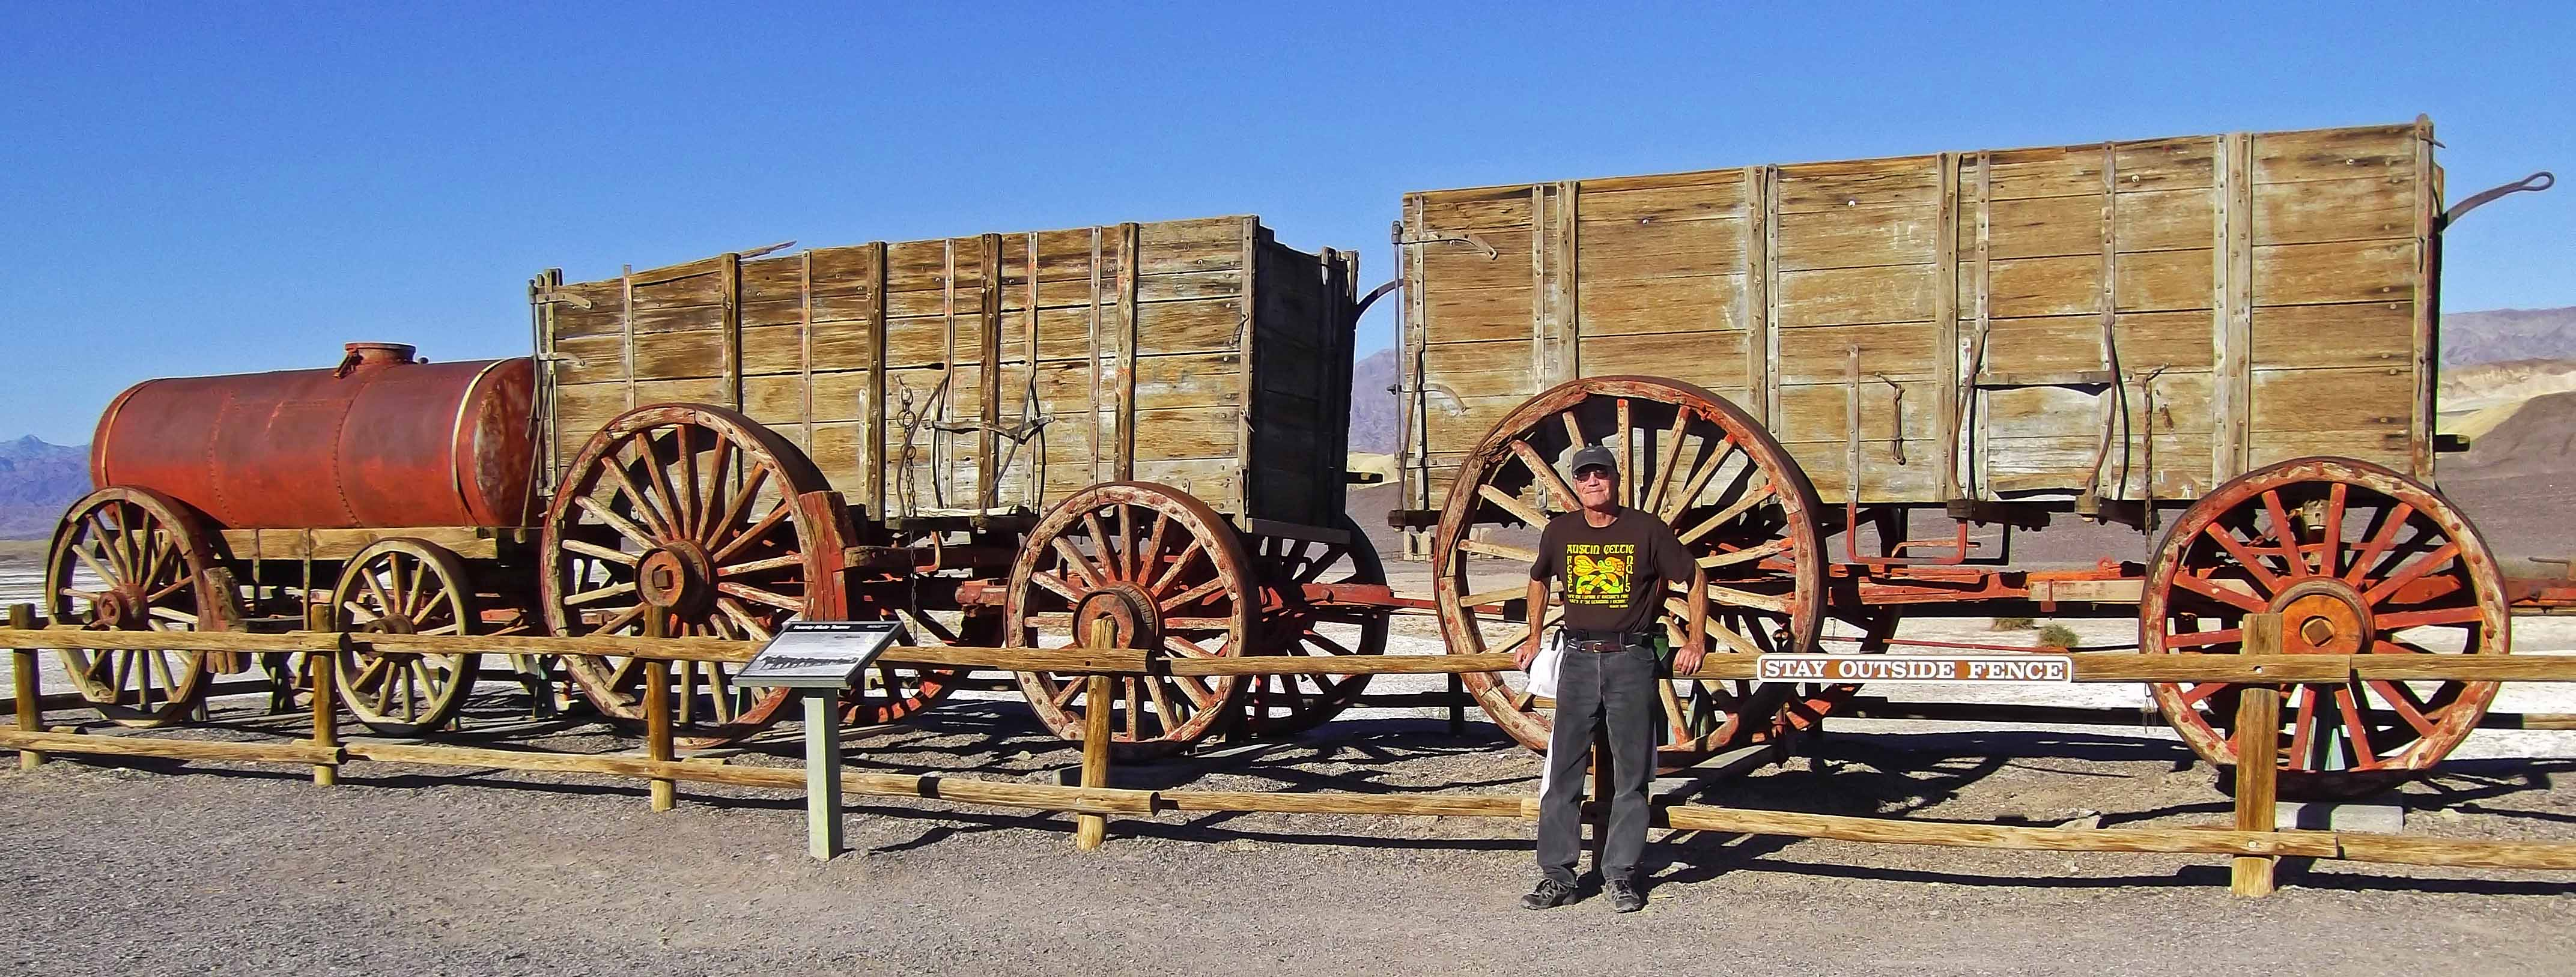 Death valley national park kings on the road for 20 mule team borax swimming pools